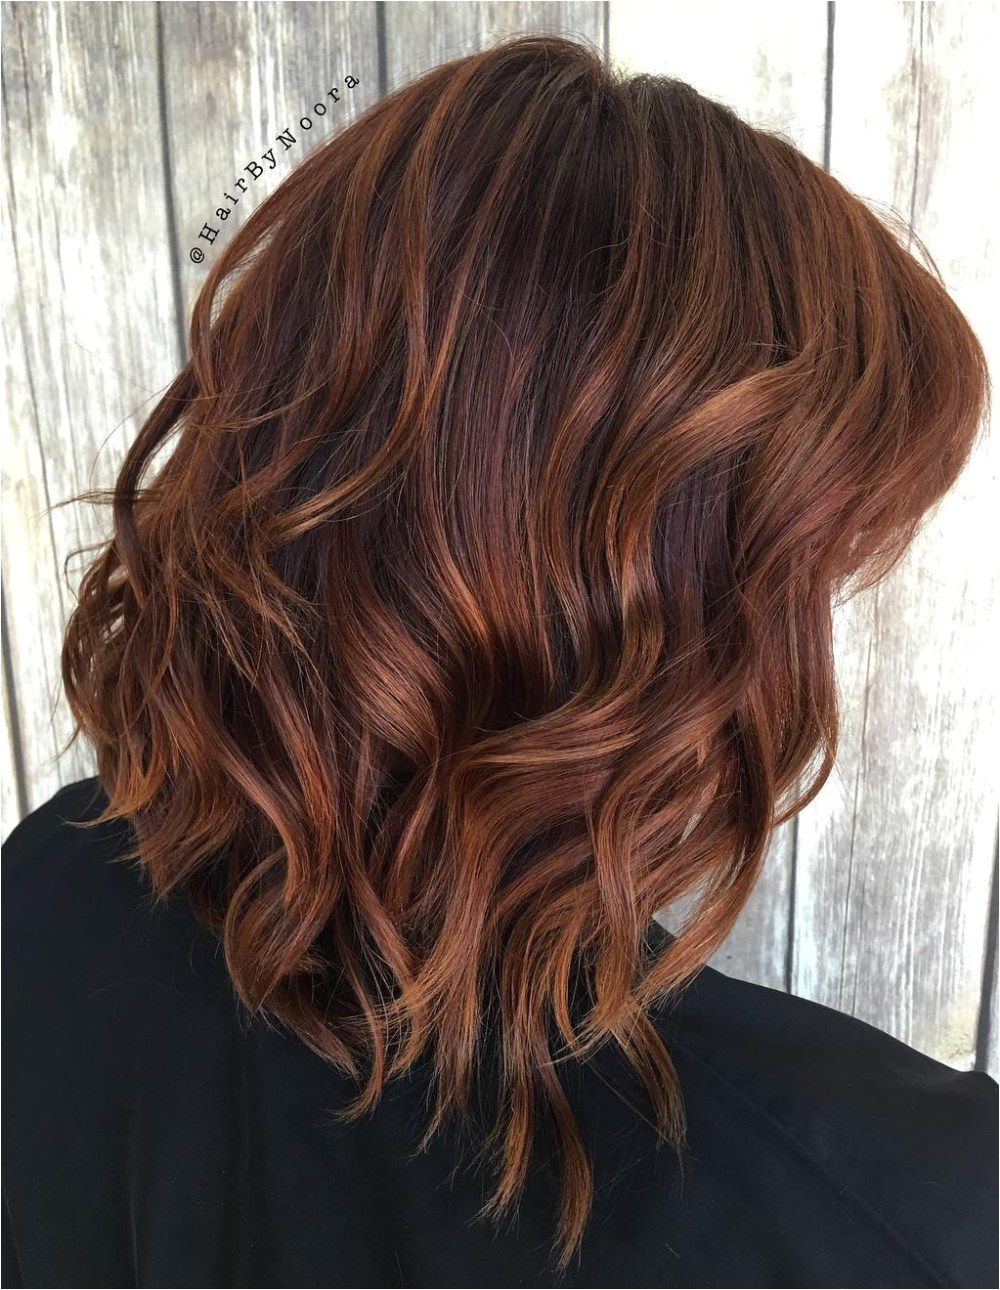 Haircut Highlights Cost 40 Unique Ways to Make Your Chestnut Brown Hair Pop